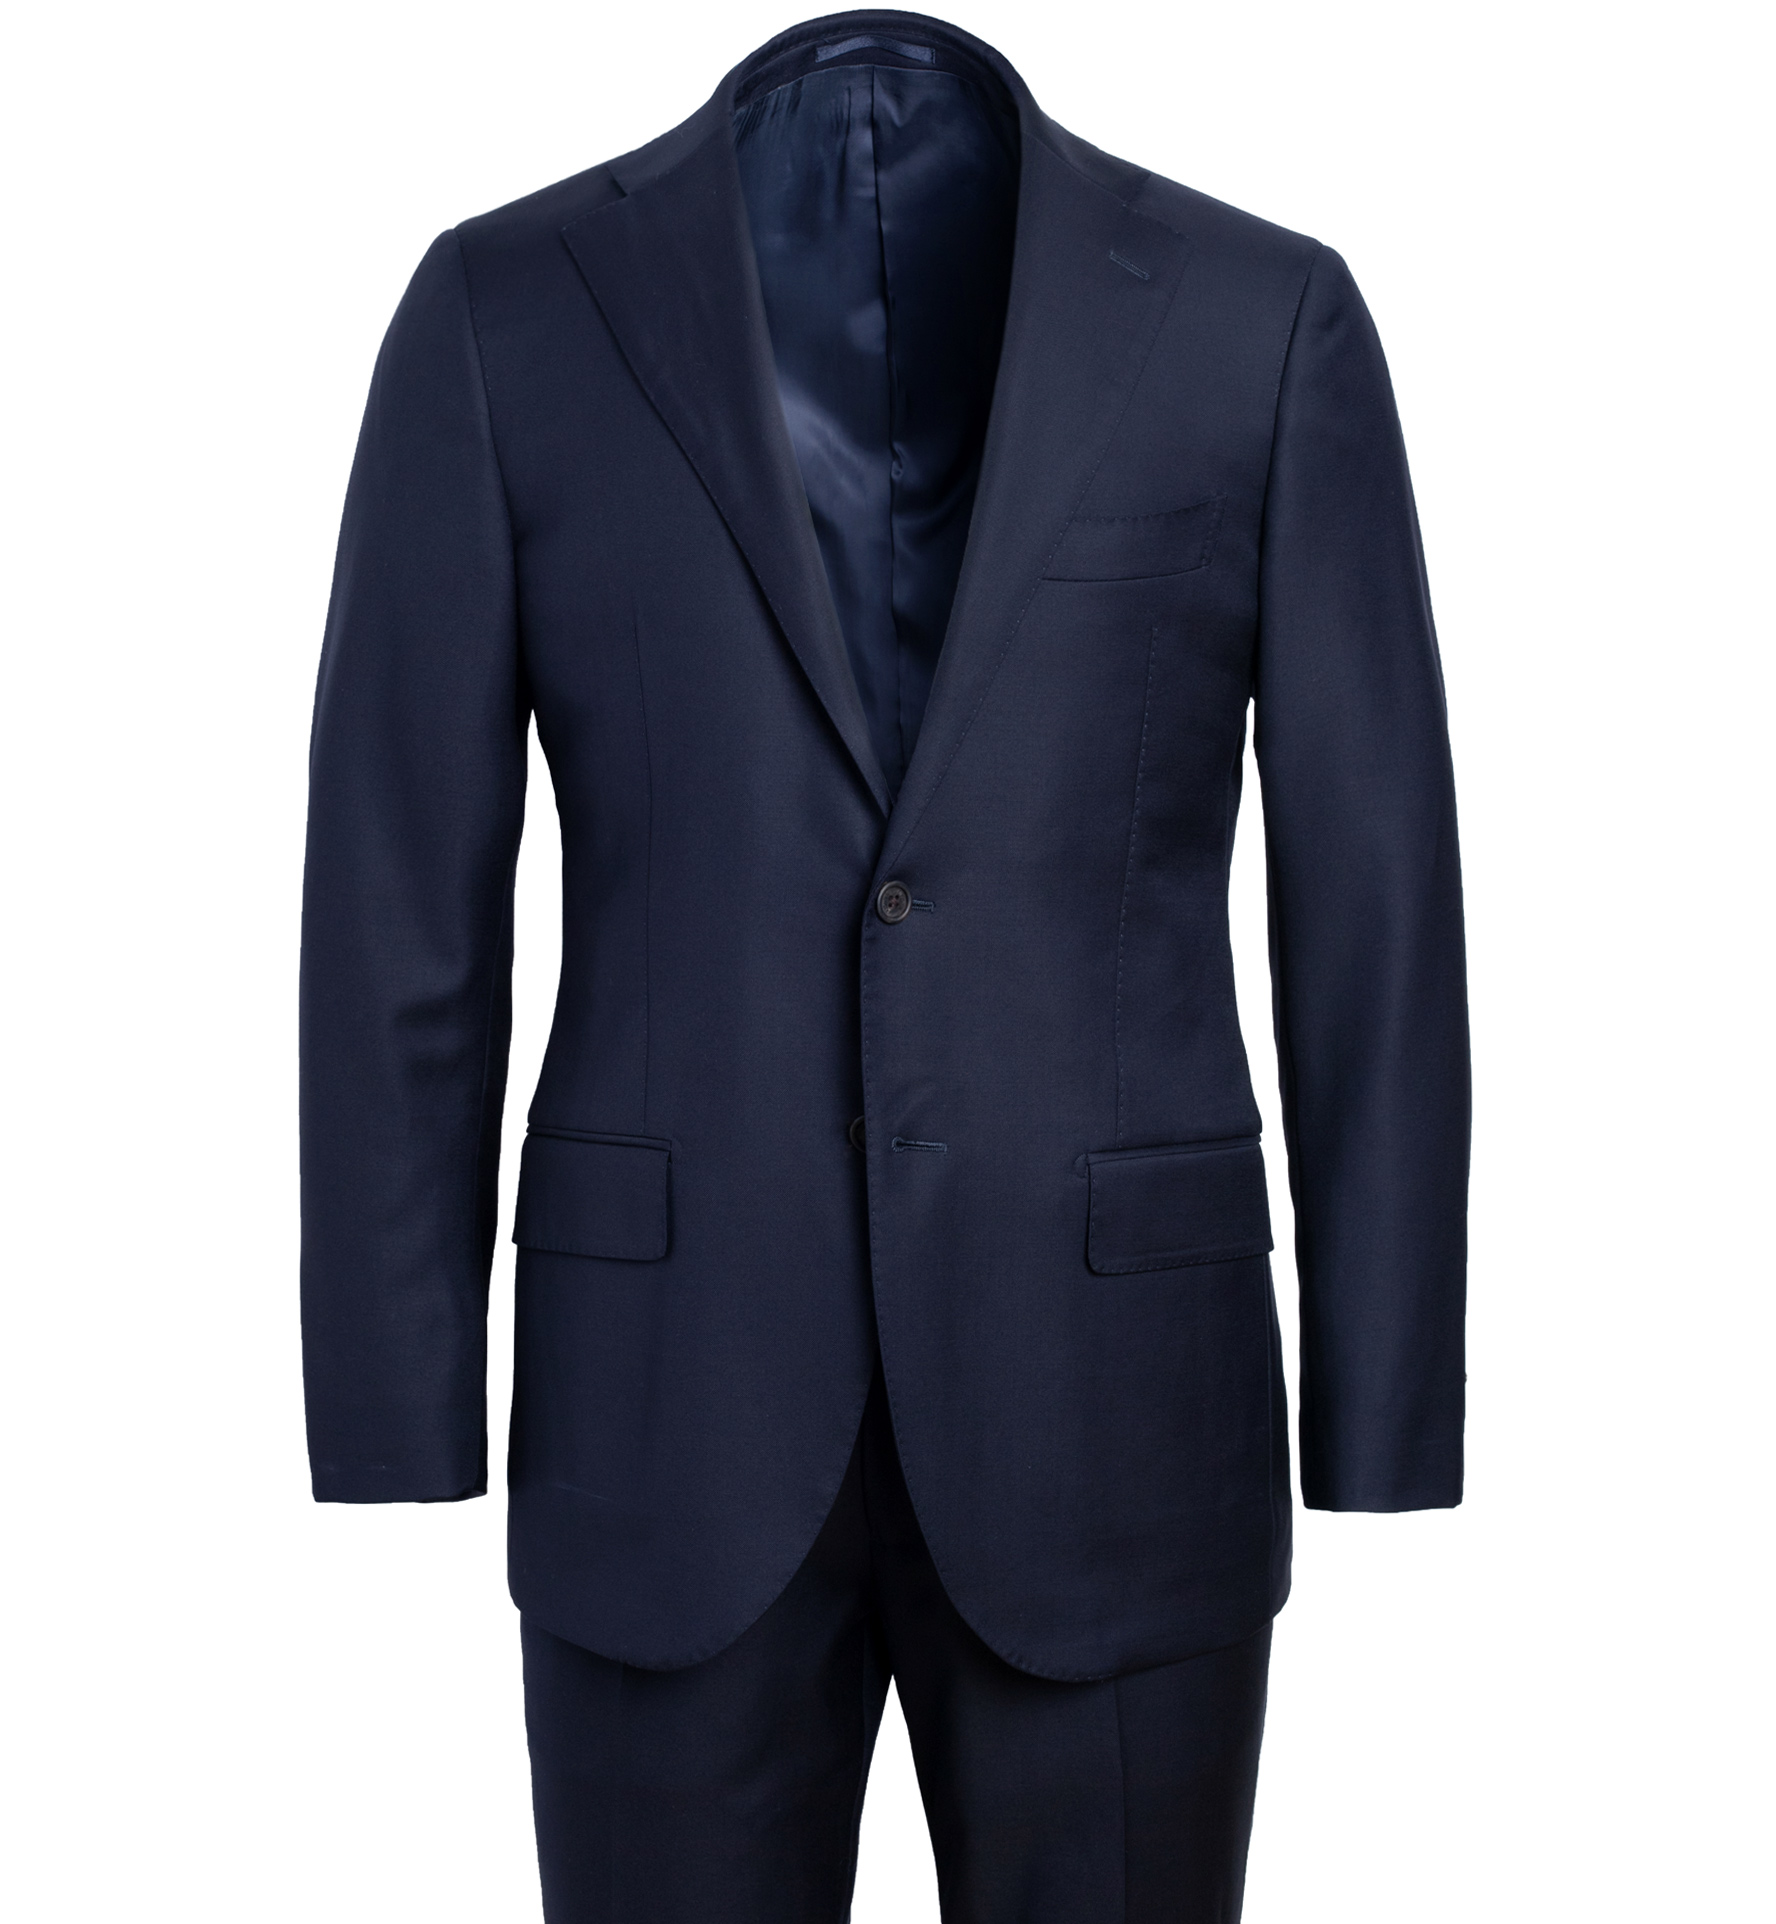 Zoom Image of Allen VBC Navy S110s Wool Suit